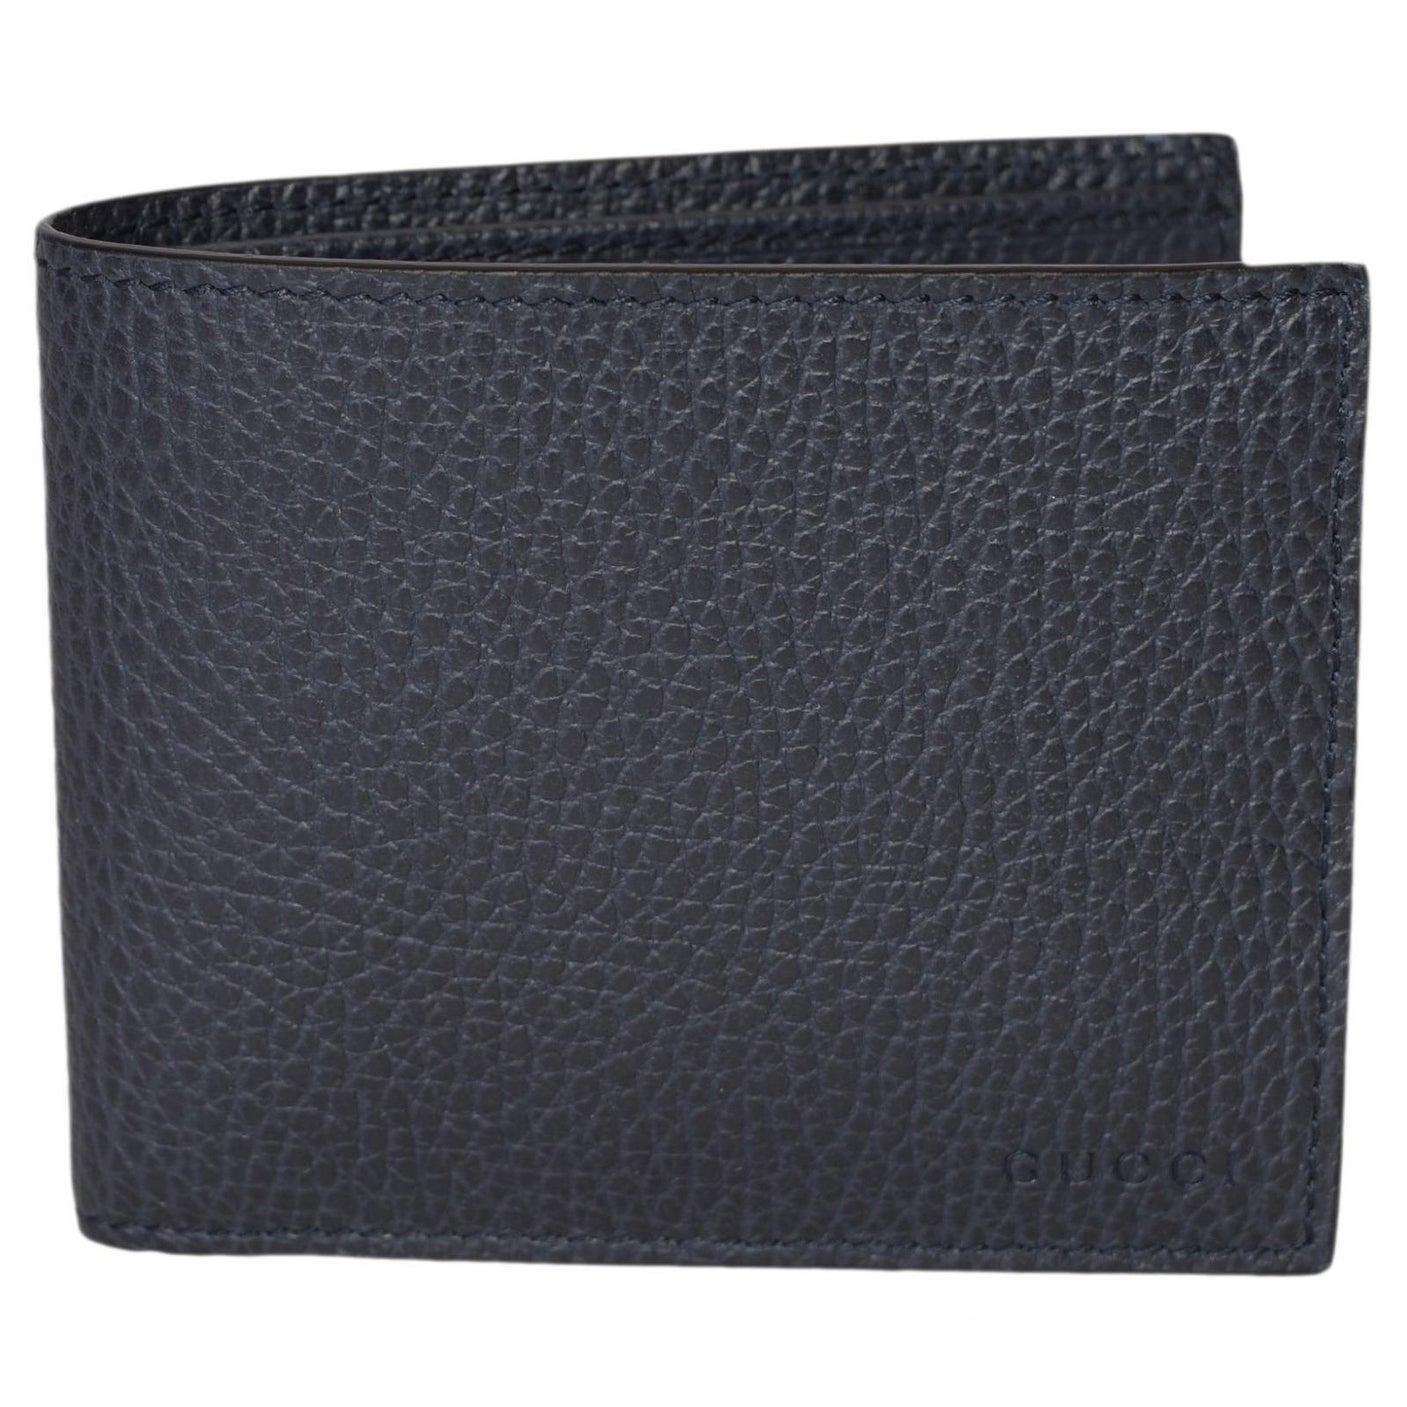 11333f674cb7 Gucci Men's 260987 4009 Blue Leather Trademark Logo Bifold Wallet - 4.5